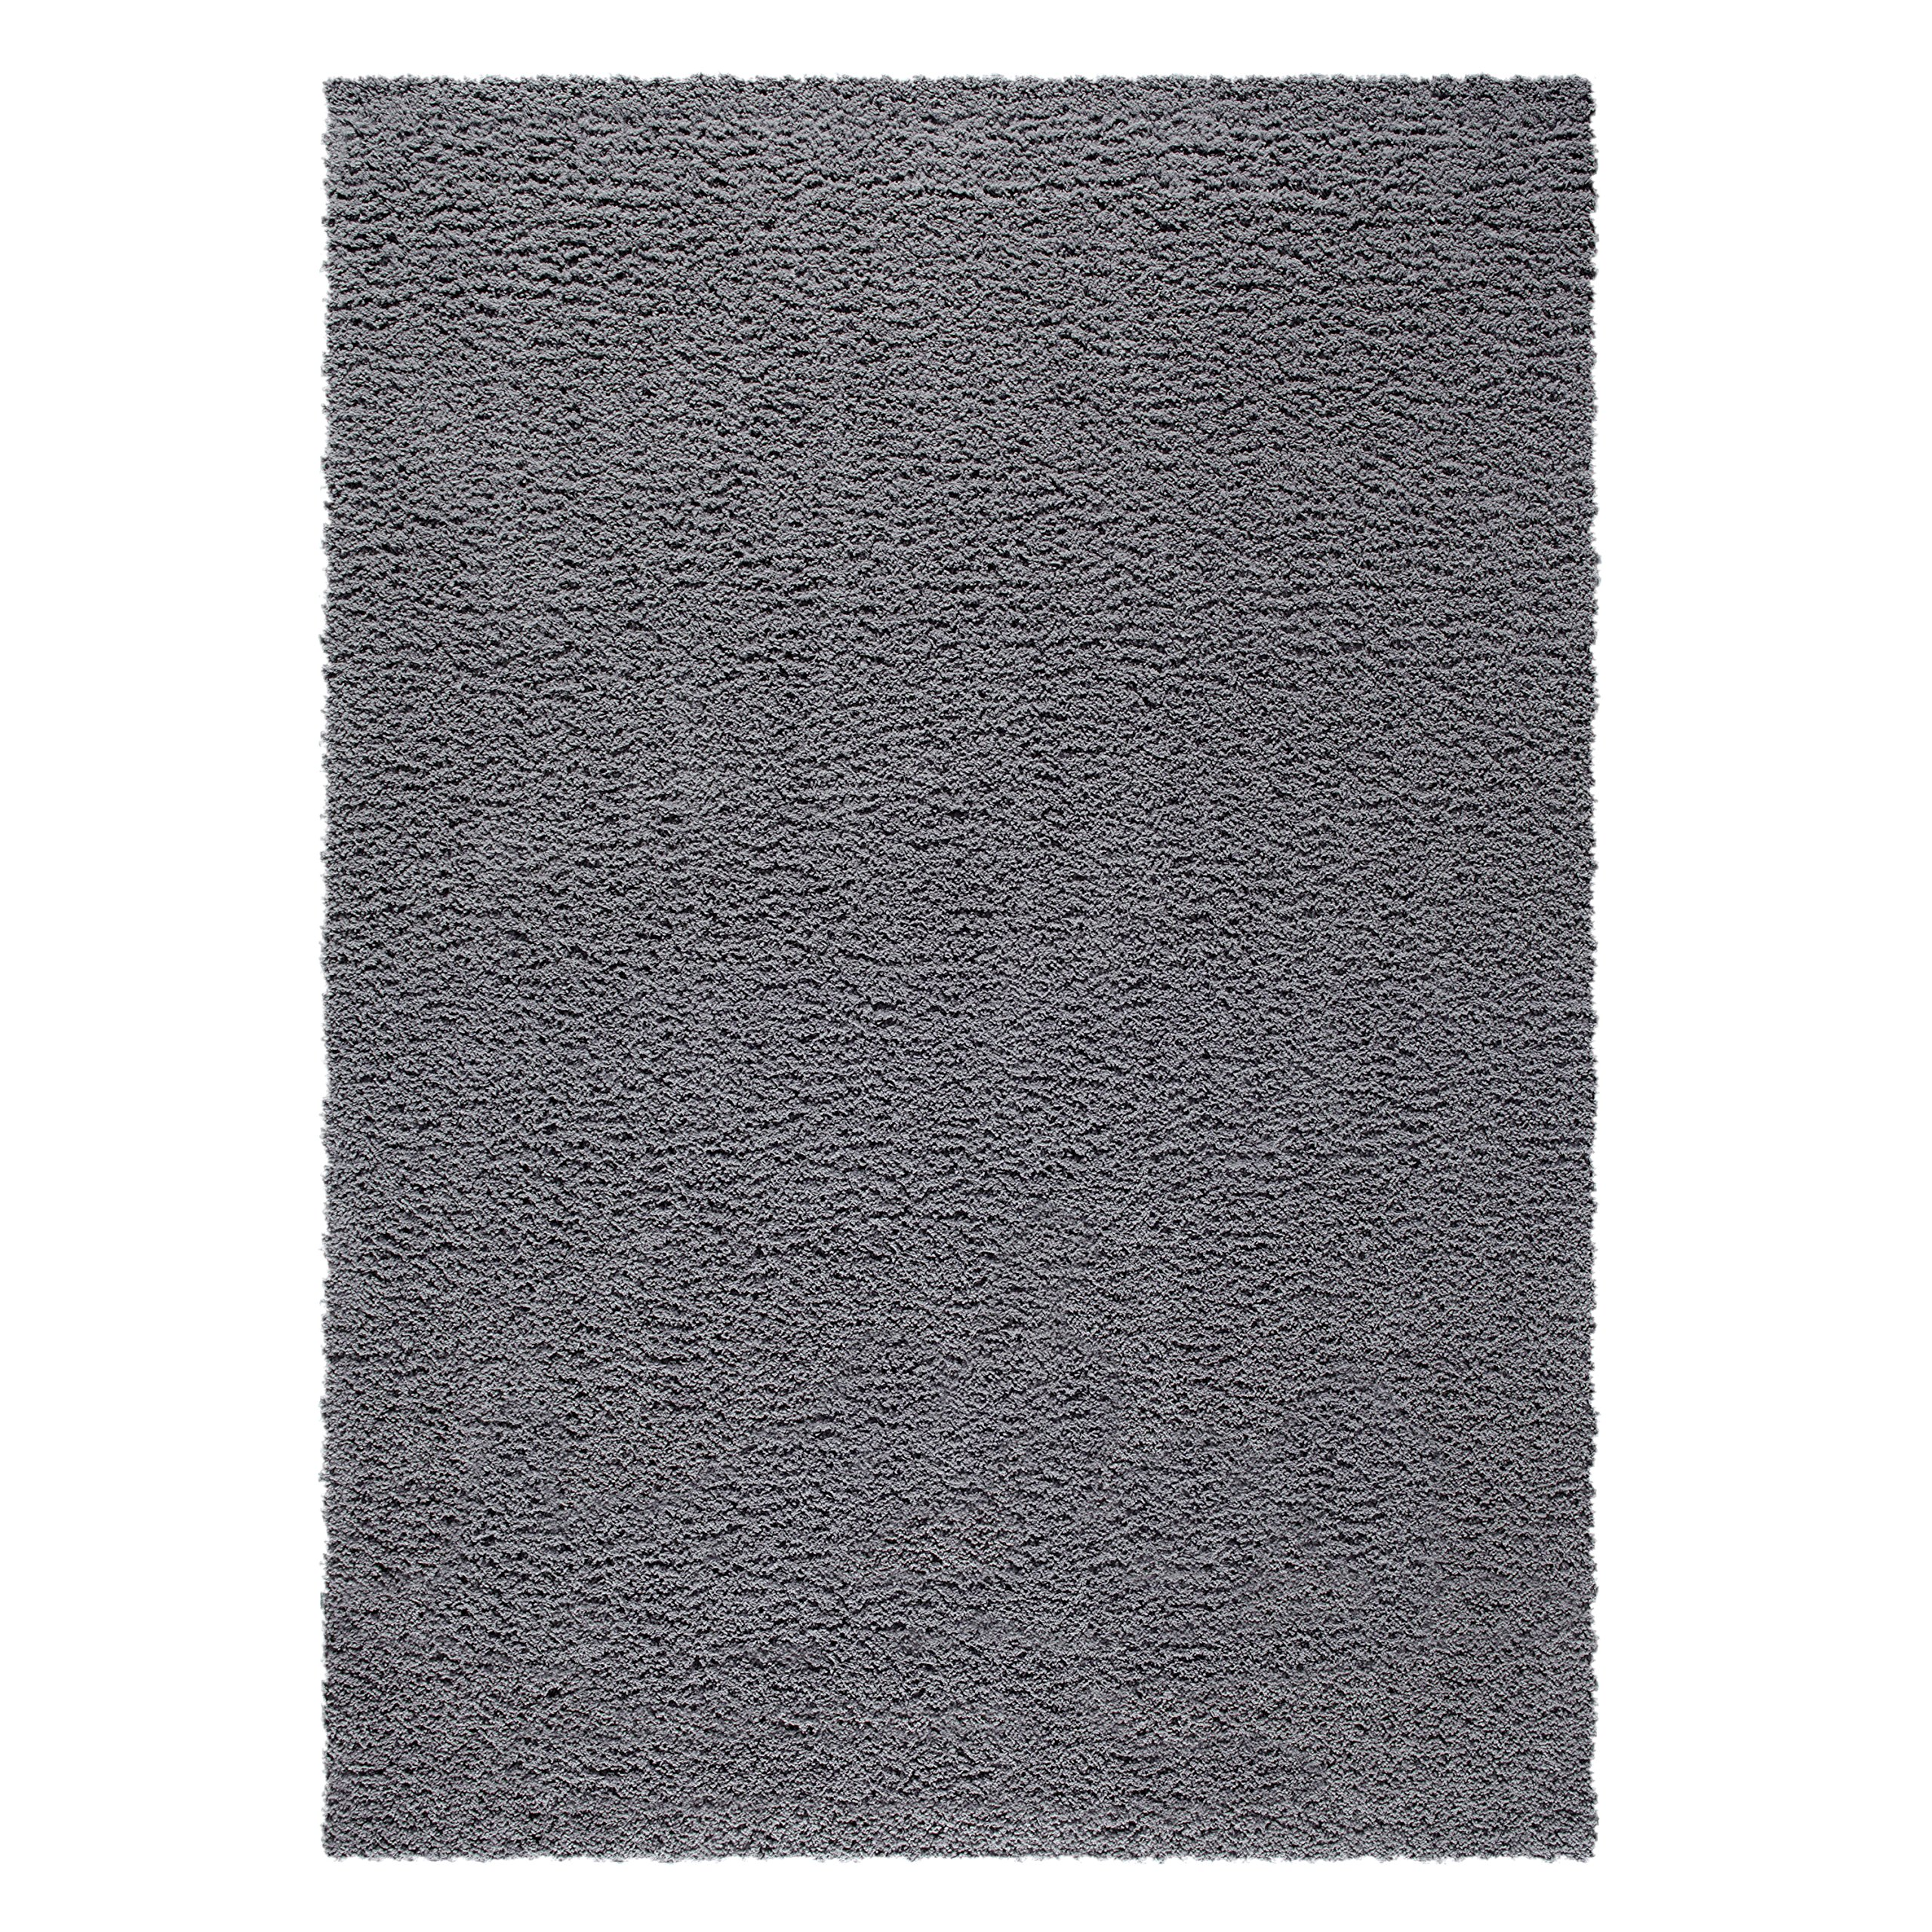 Maples Rugs Area Rugs, [Made in USA][Catriona] 7' x 10' Non Slip Padded Large Rug for Living Room, Bedroom, and Dining Room - Grey Funnel